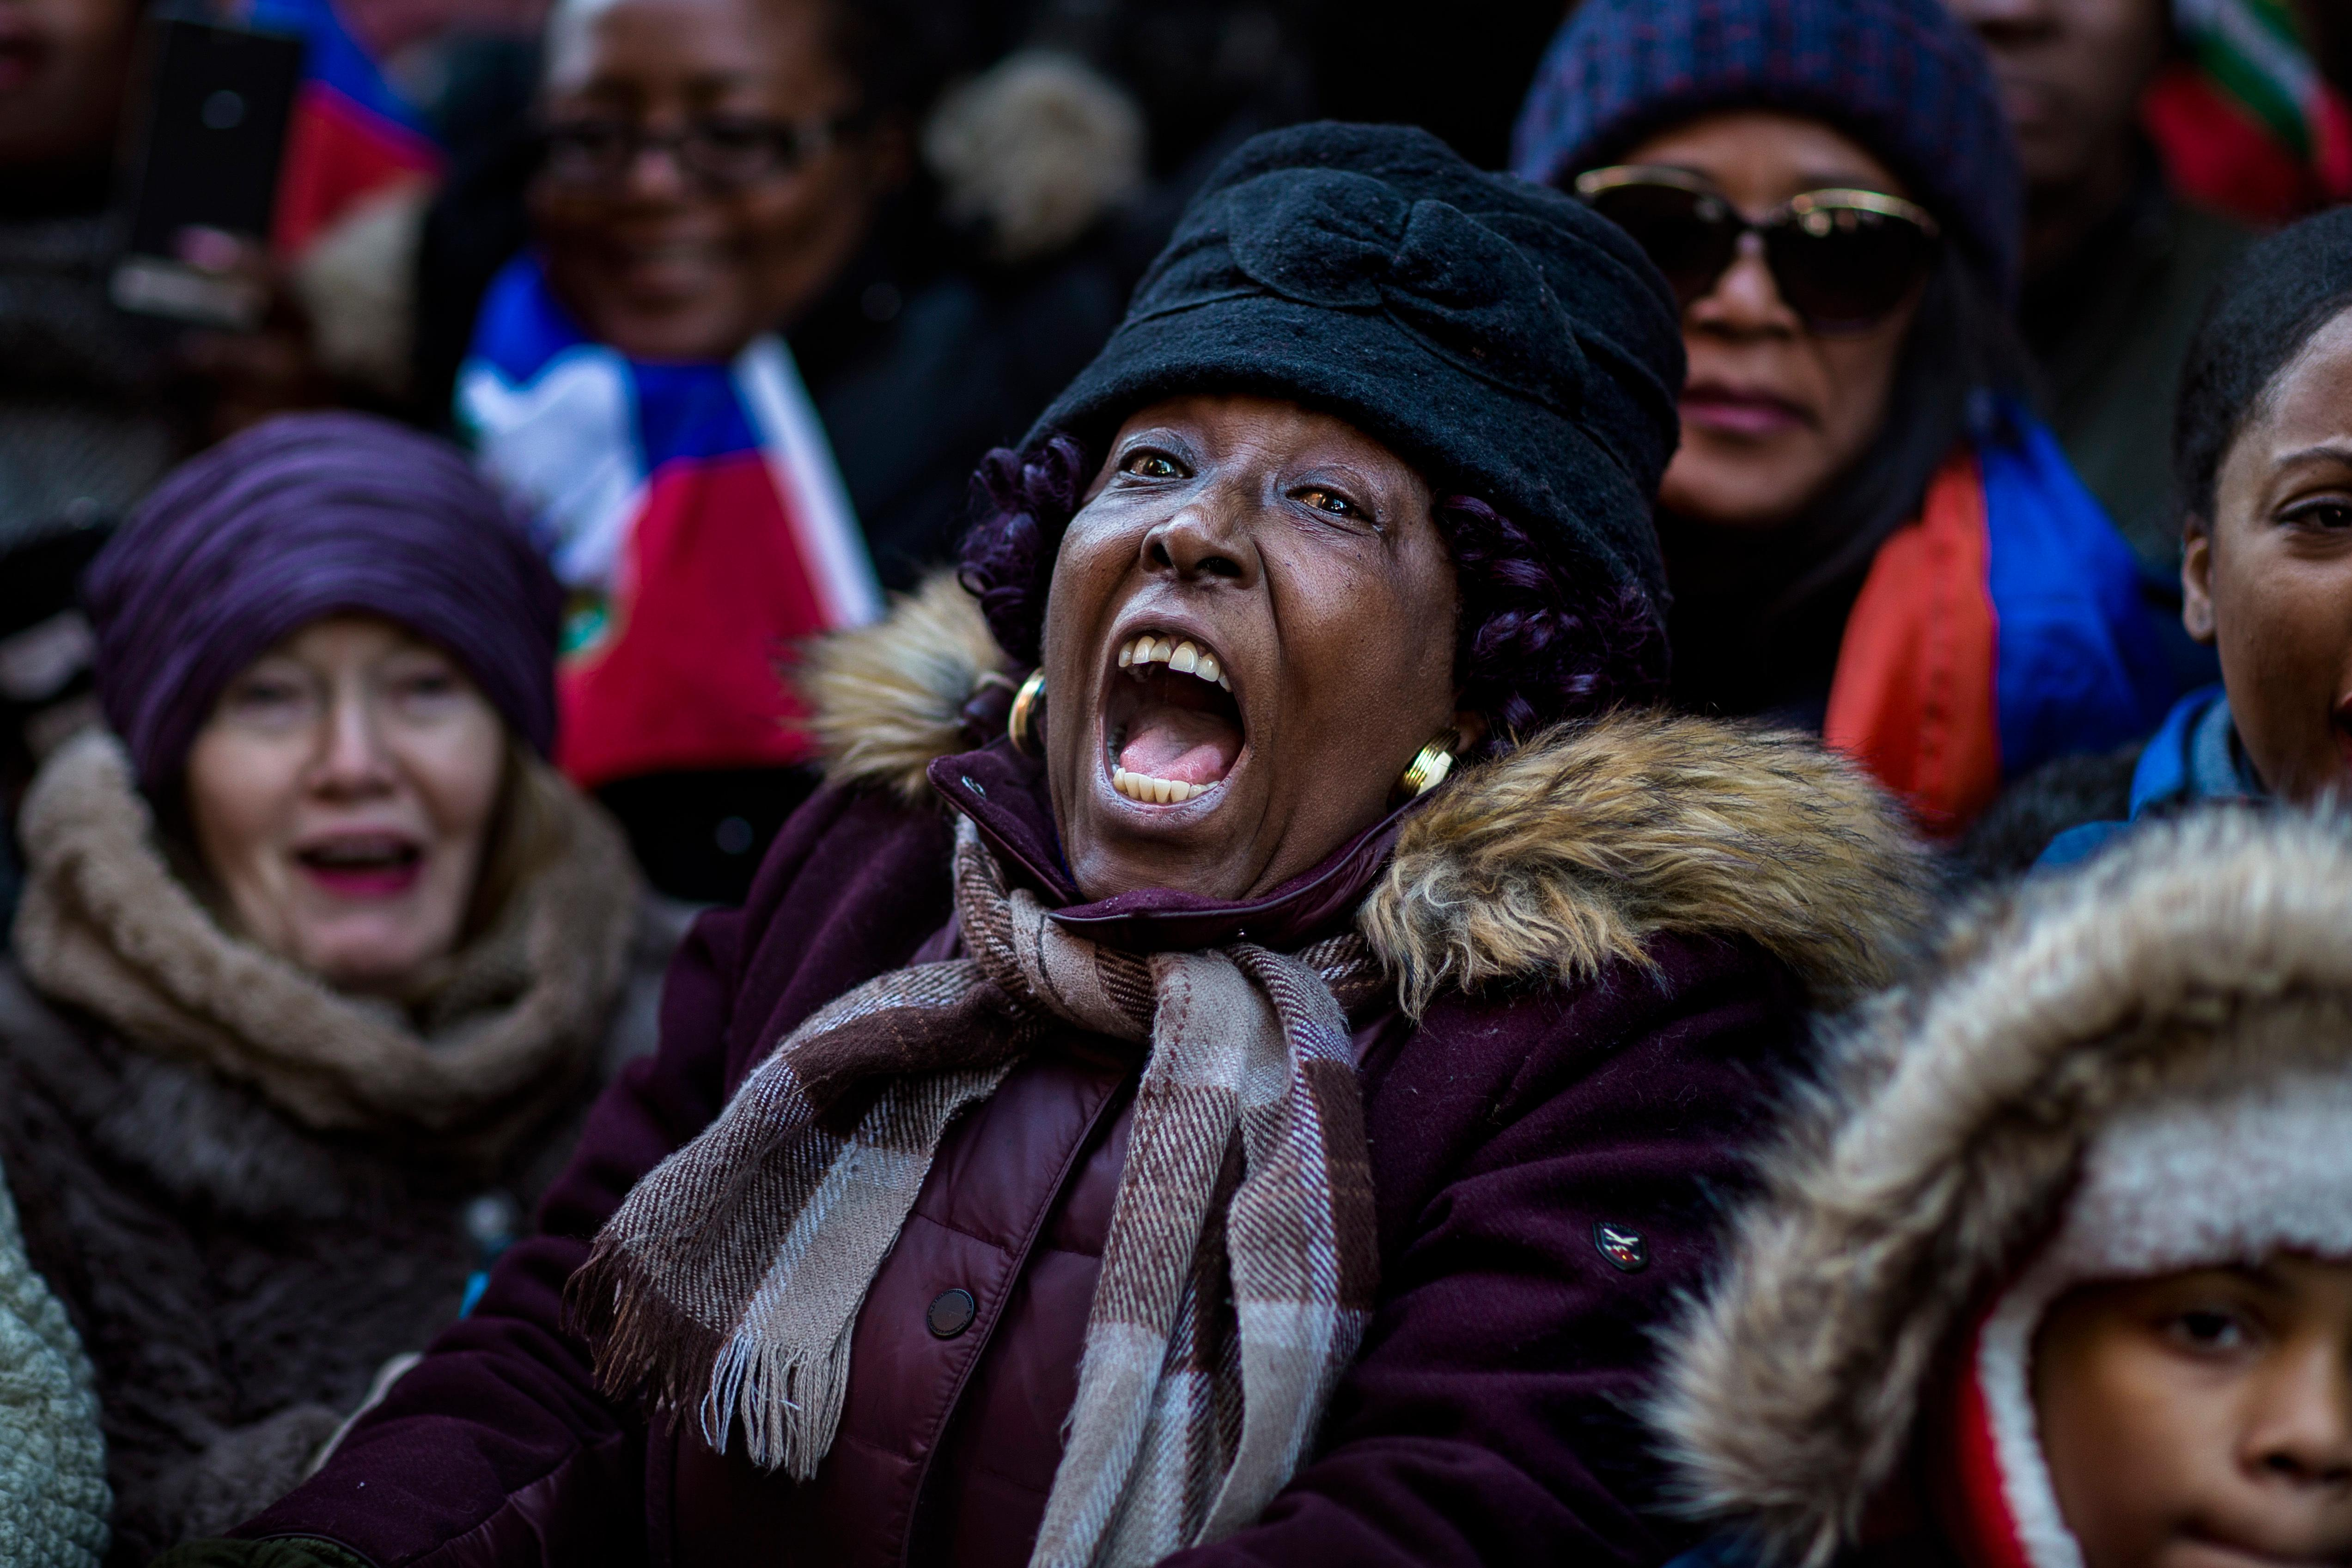 A woman shouts during a rally against racism in opposition to President Donald Trump's recent disparaging comments about Haiti and African nations in Times Square in New York, on Monday, Jan. 15, 2018. (AP Photo/Andres Kudacki)